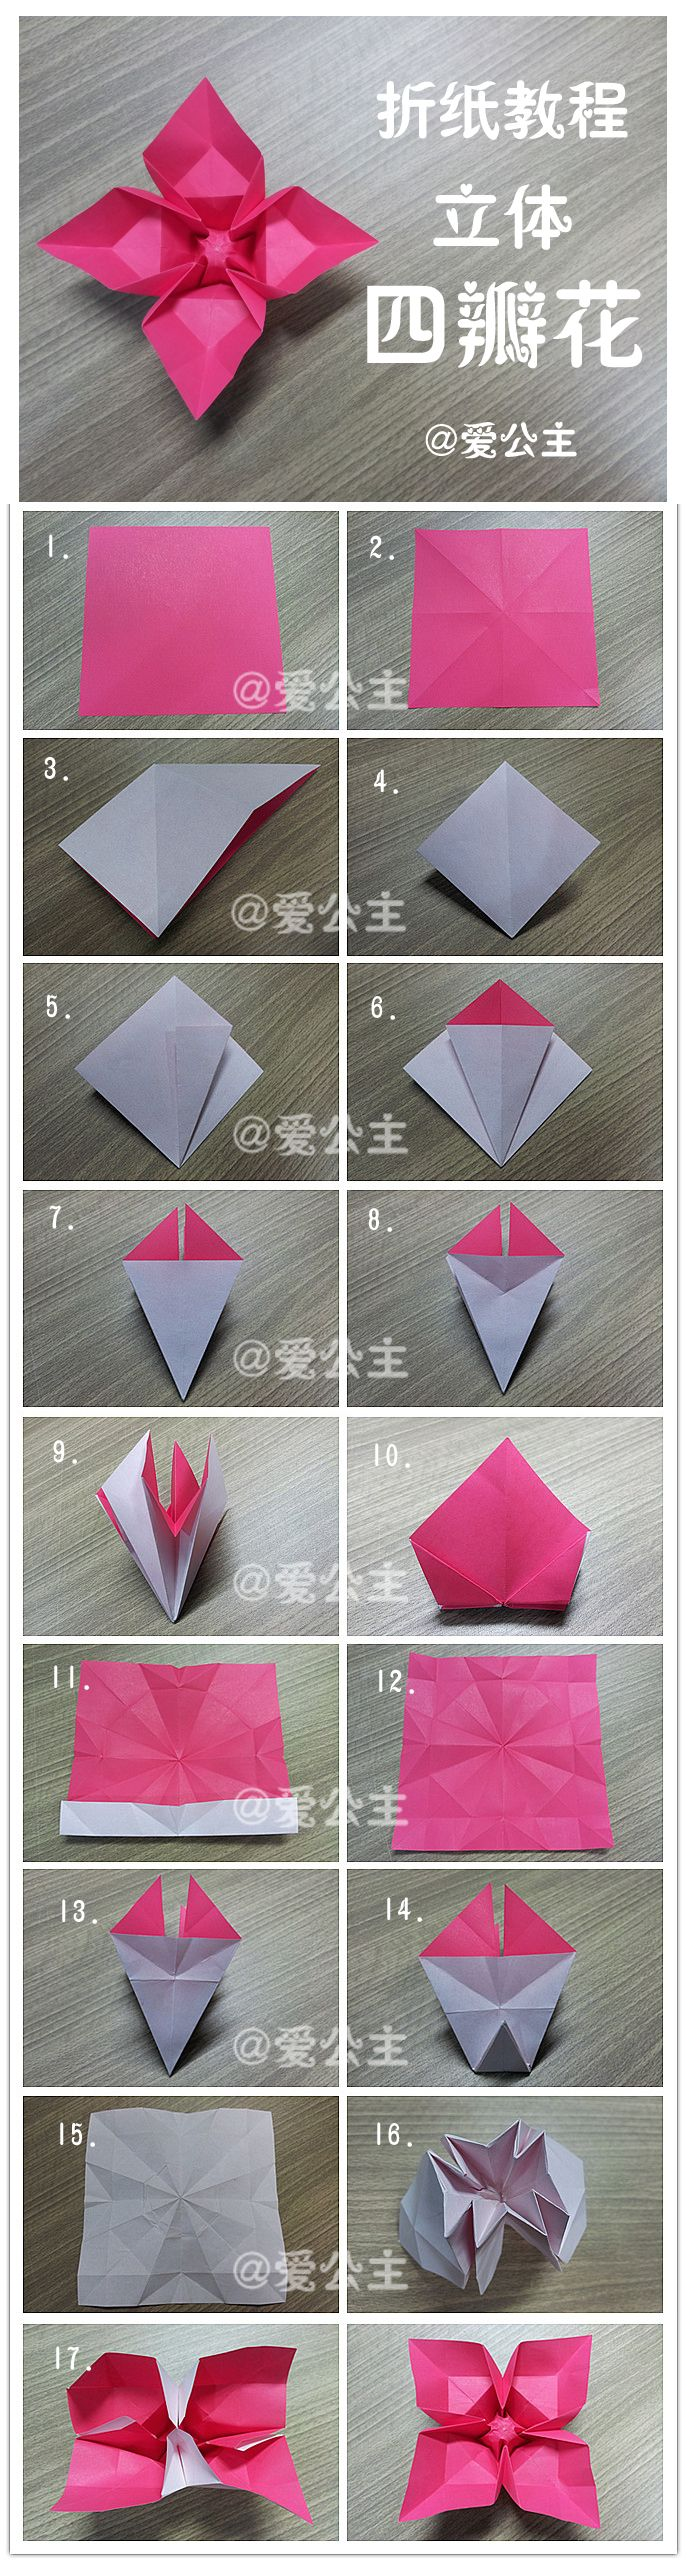 Pin By Subha Praveen On Paper Flowers Origami Origami Flowers